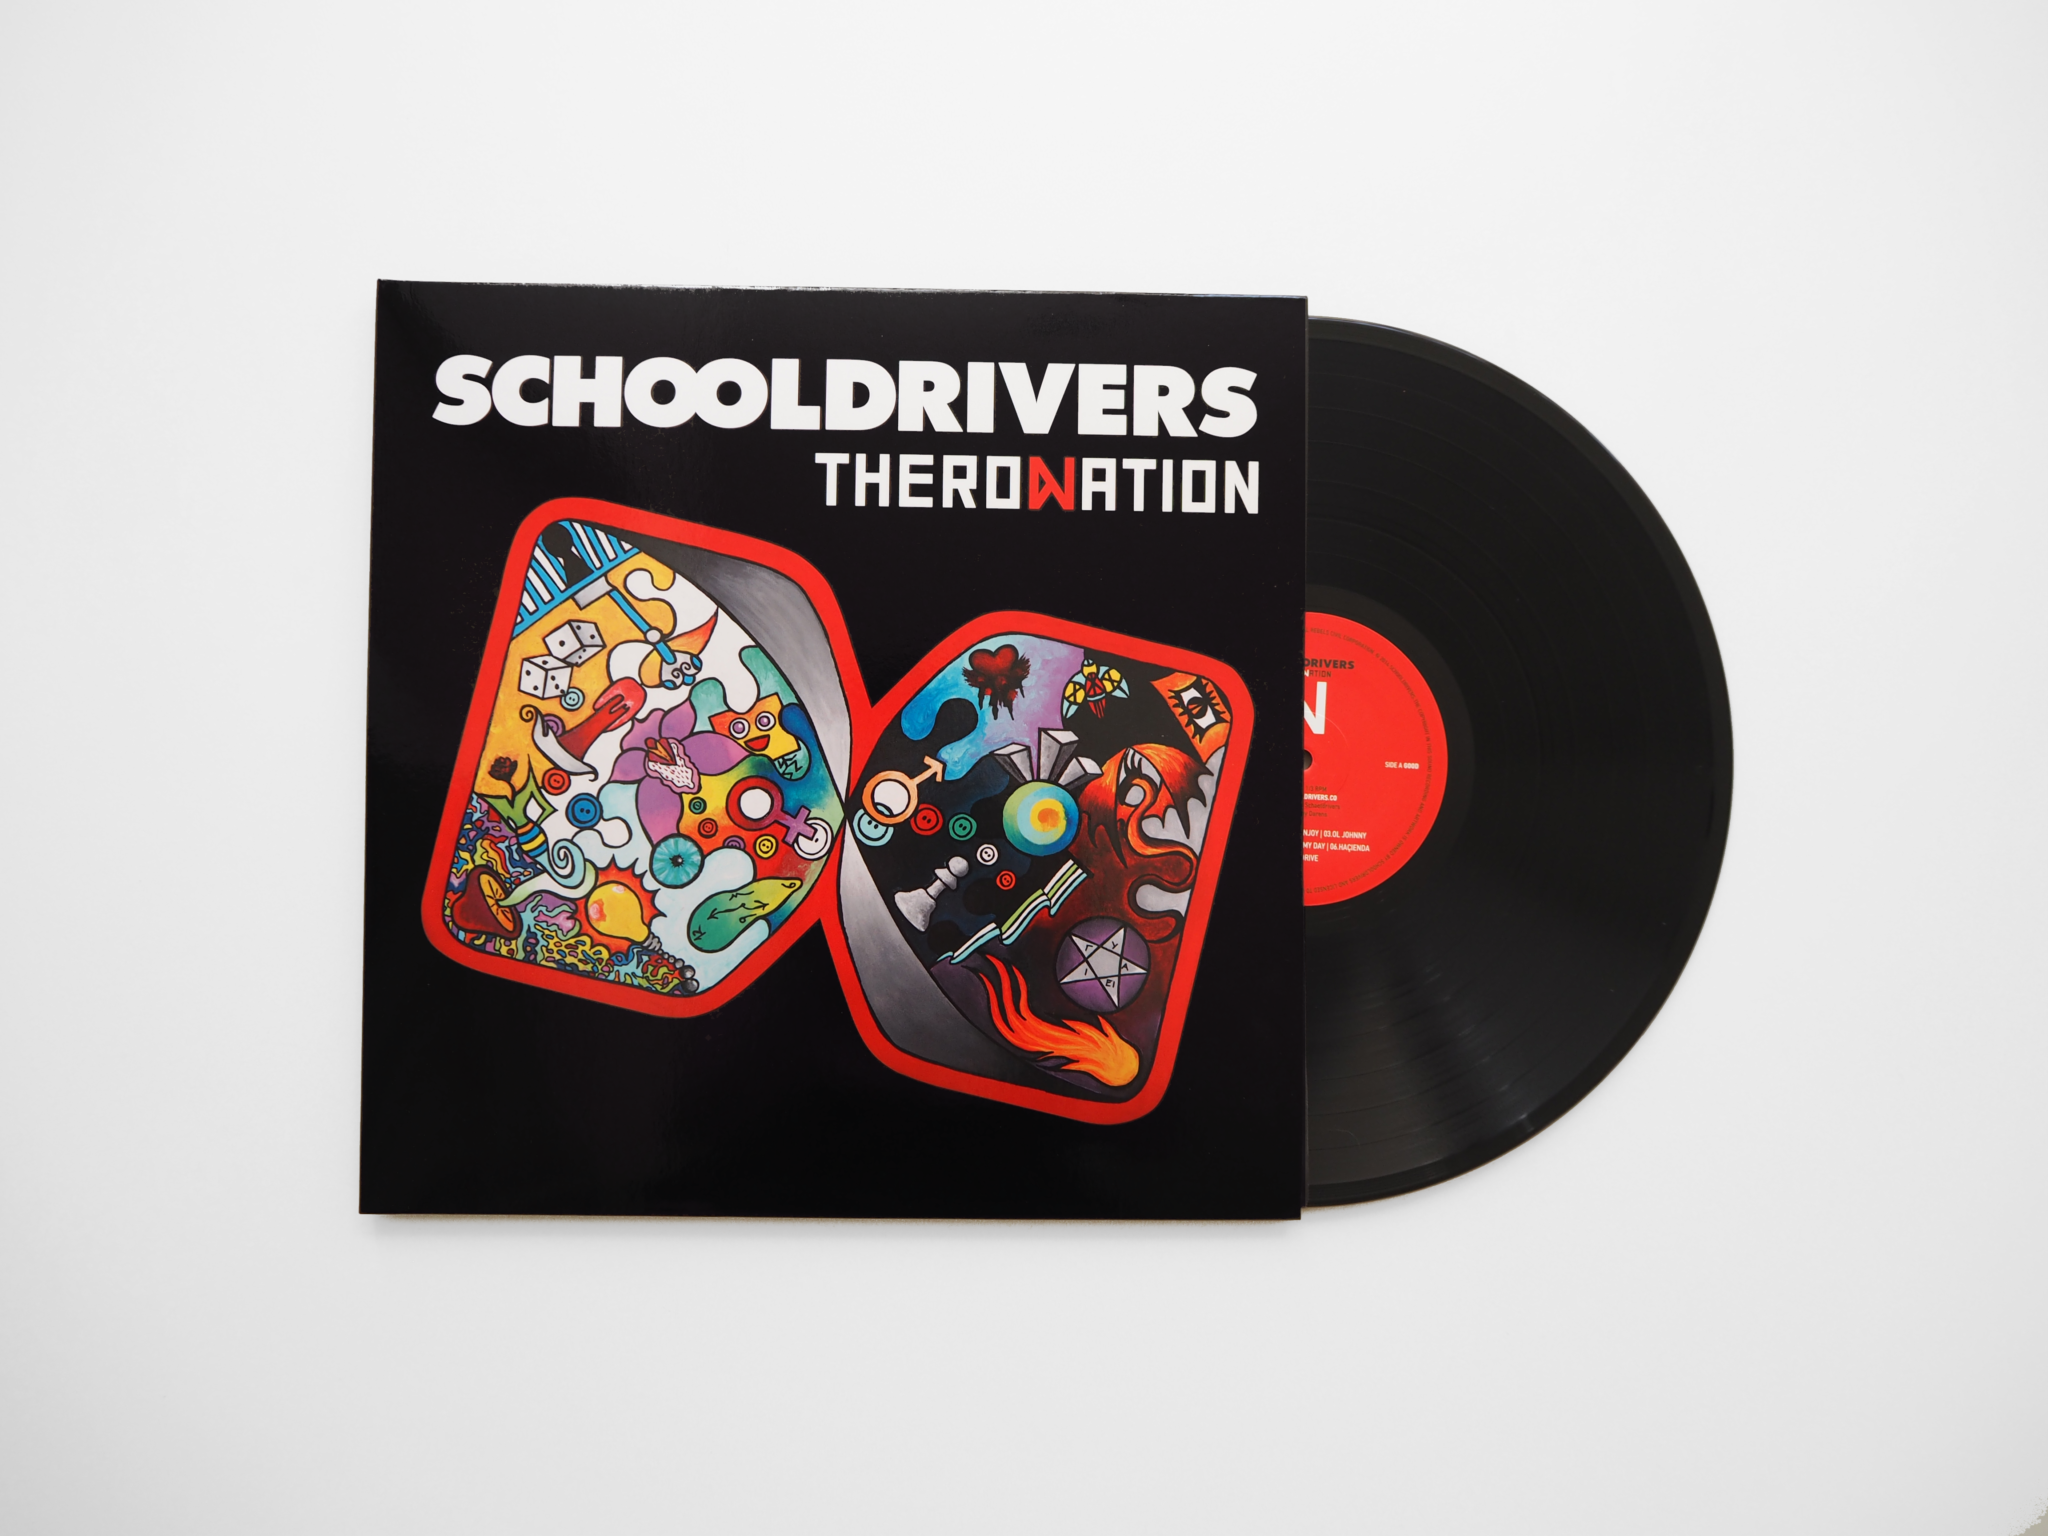 Theronation: A modern rock audiophile vinyl album by Schooldrivers